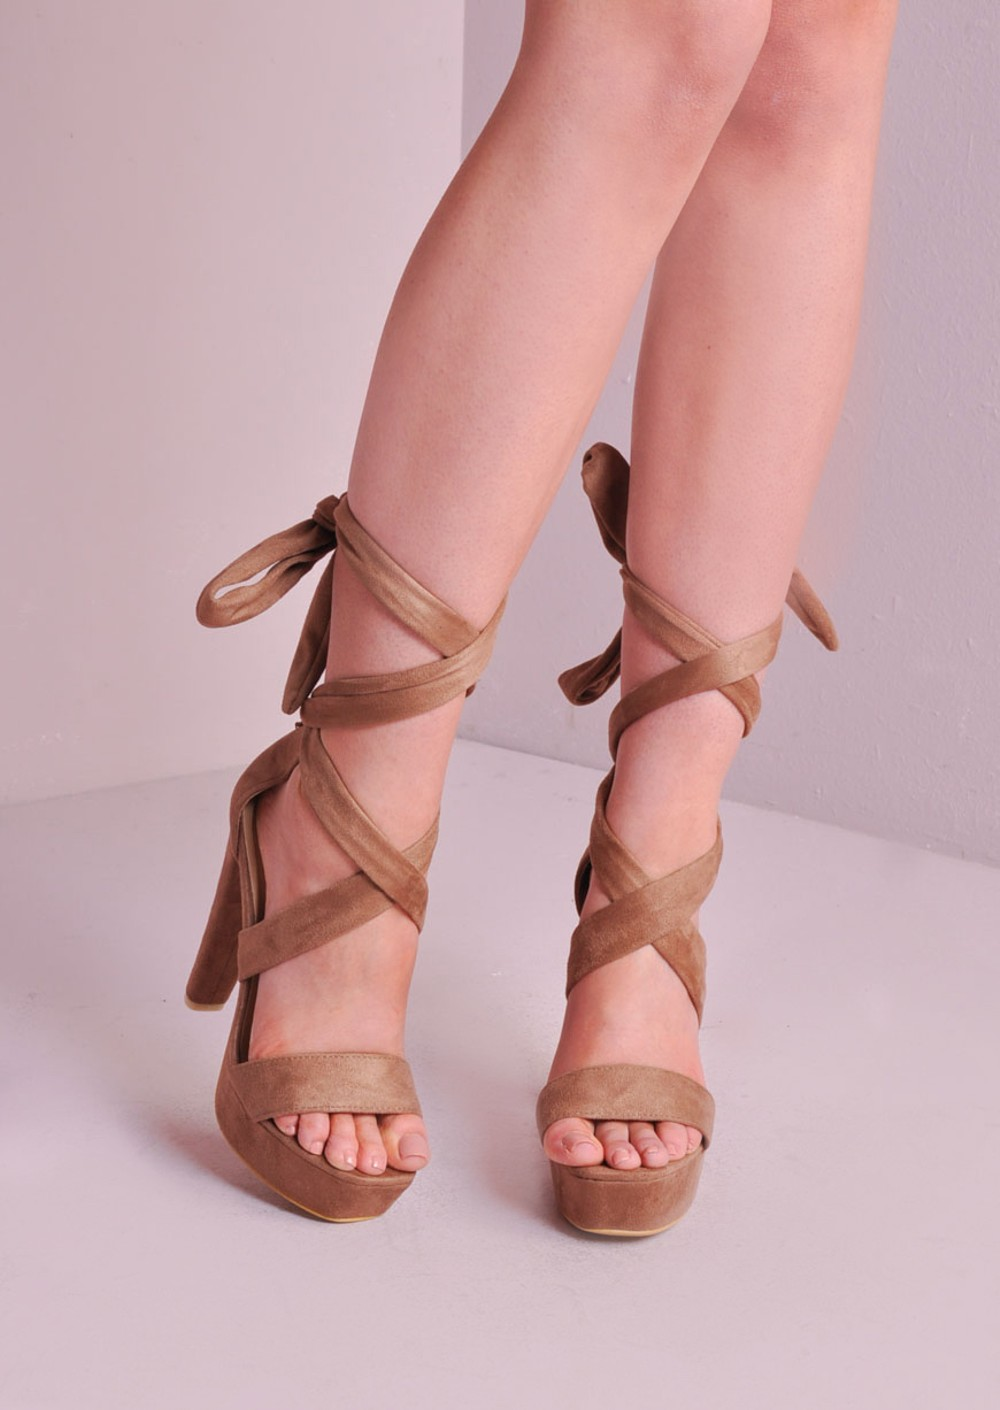 Heels That Lace Up The Leg Heels Zone